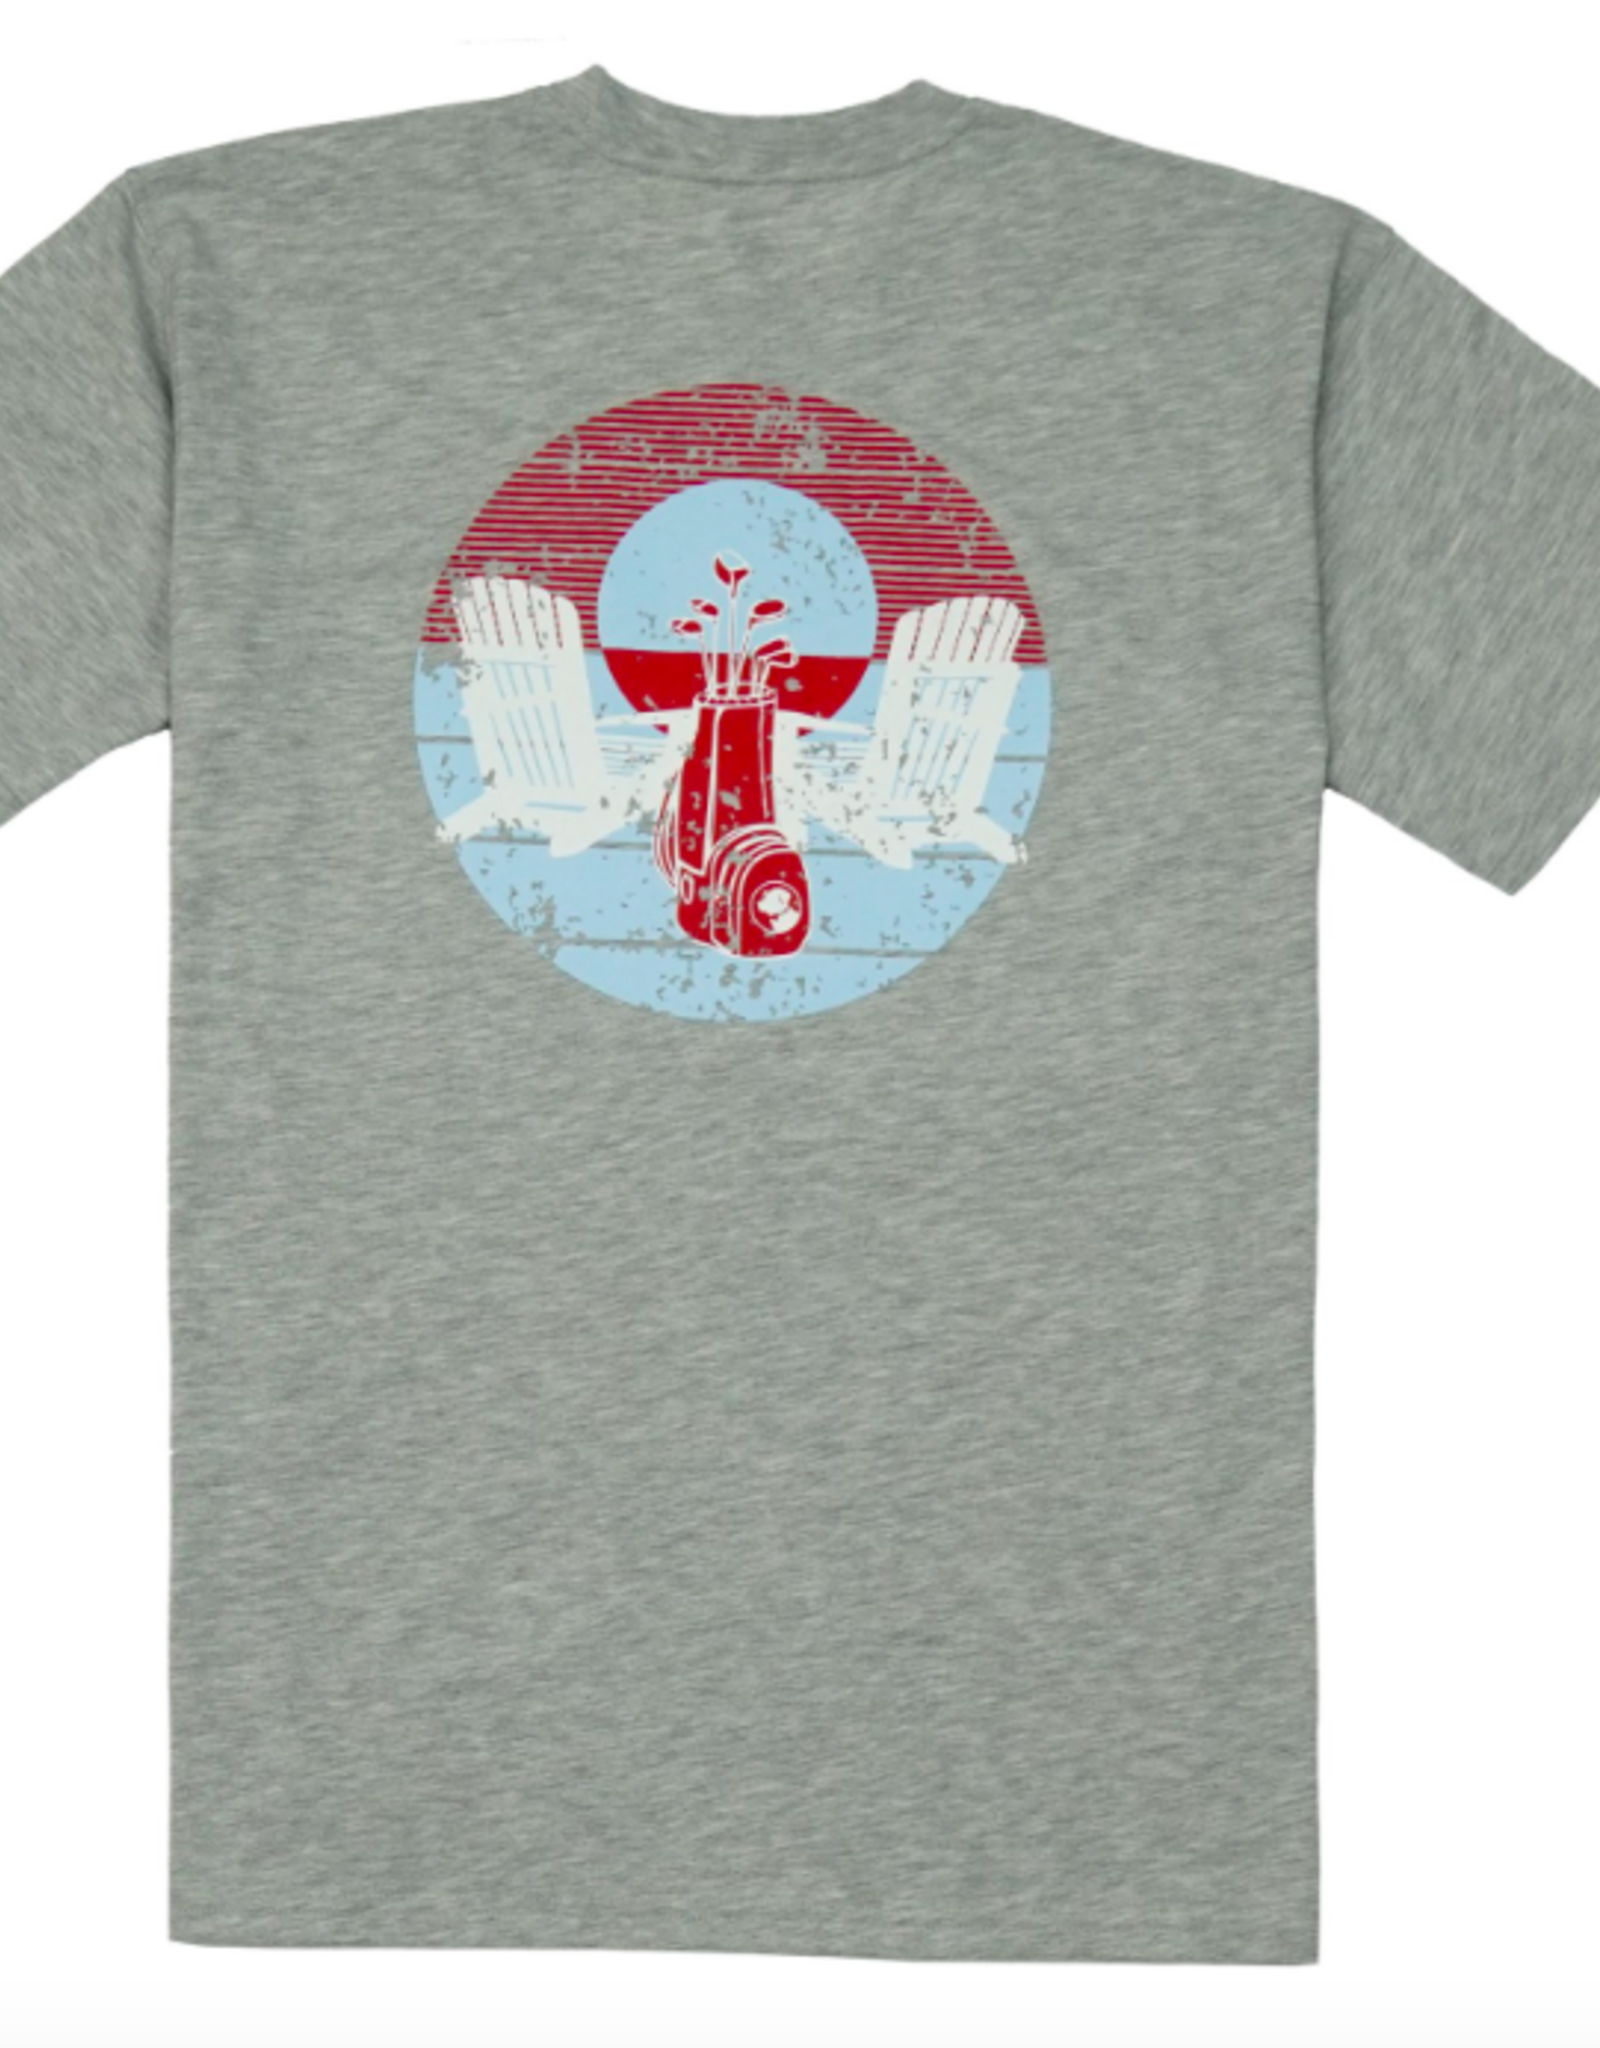 Southern Proper Porch Swinging Tee